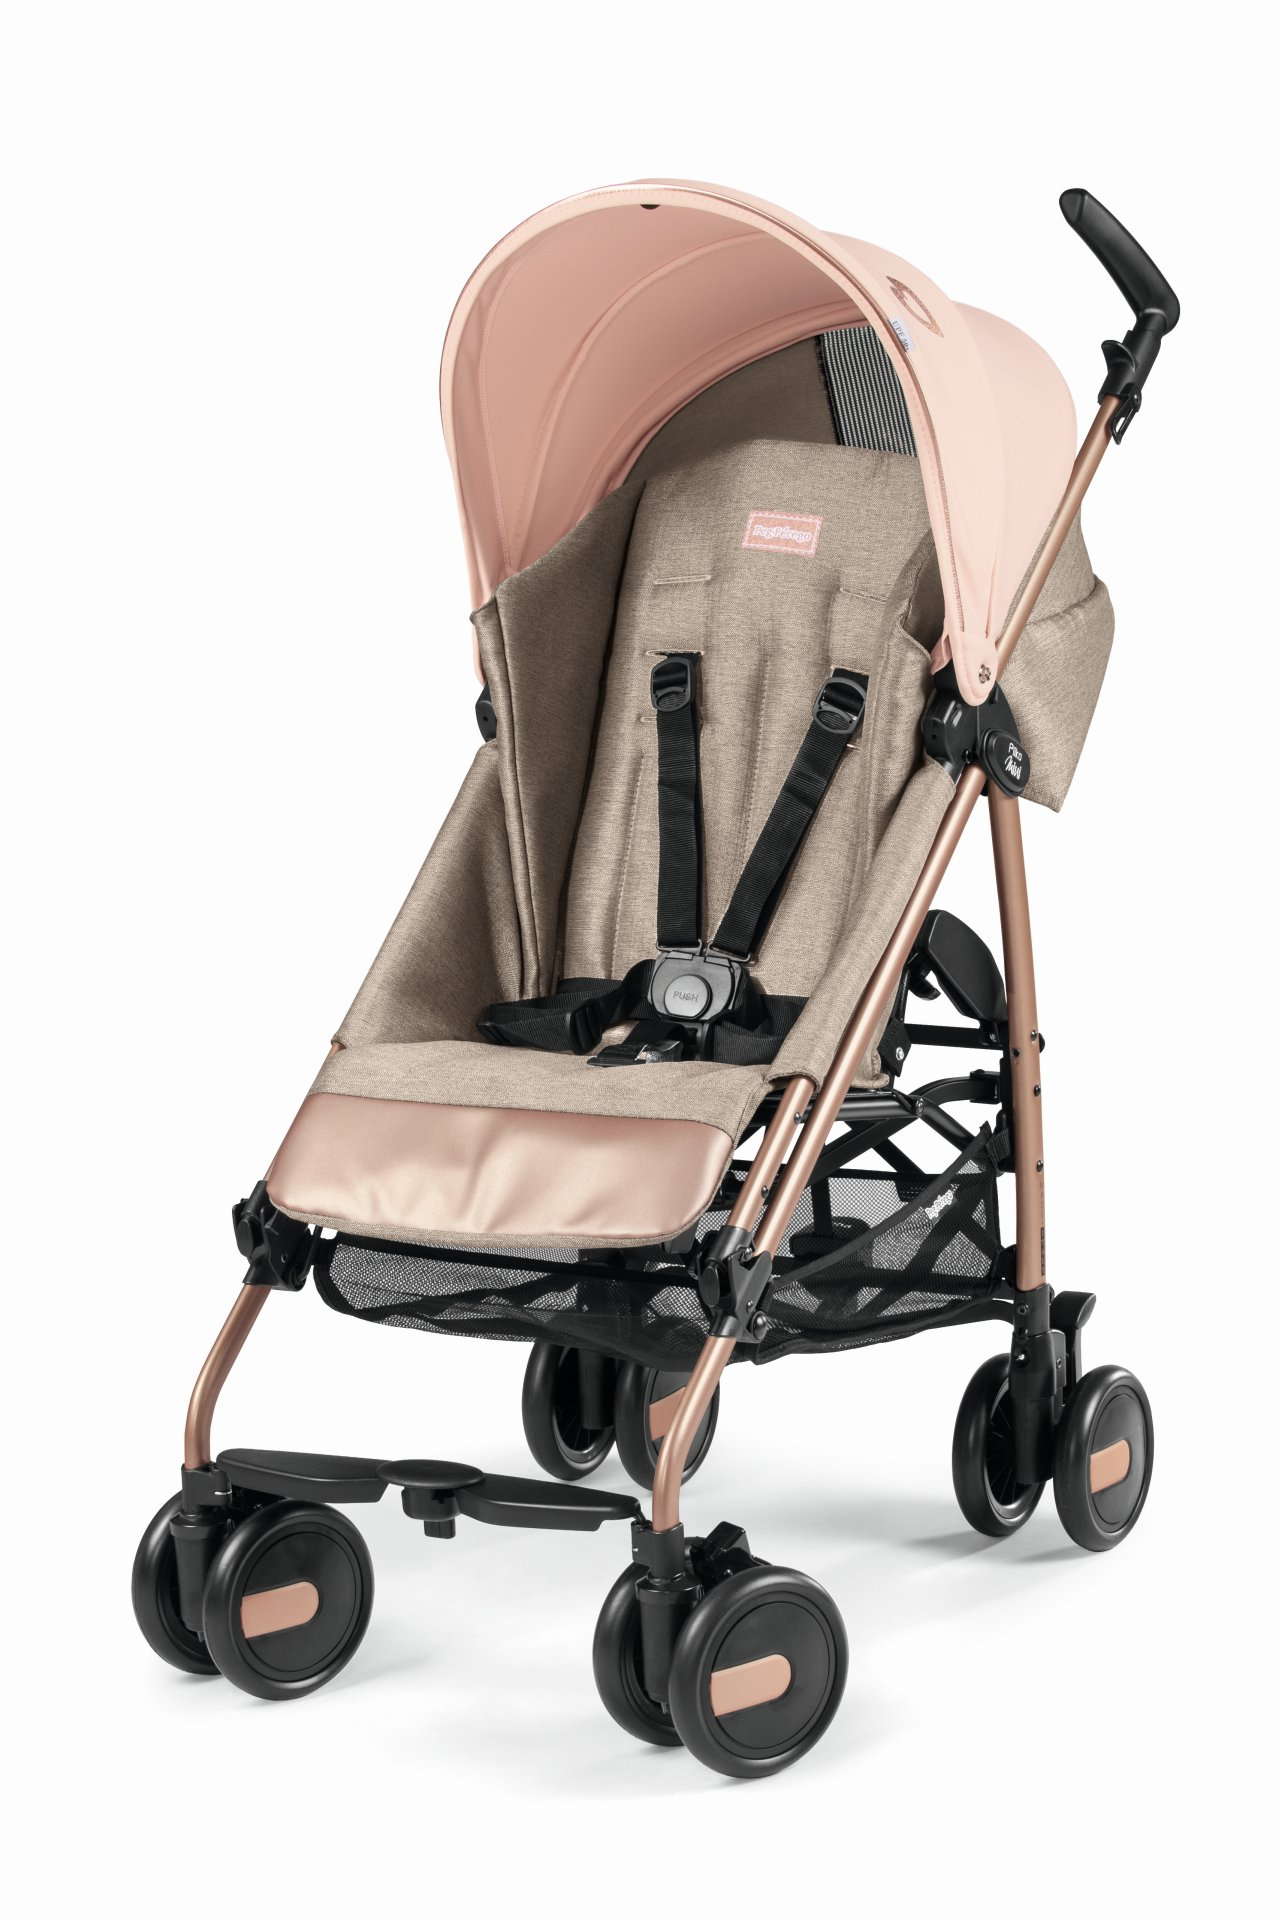 Peg Perego Stroller For Twins Pliko Mini Col Mon Amour